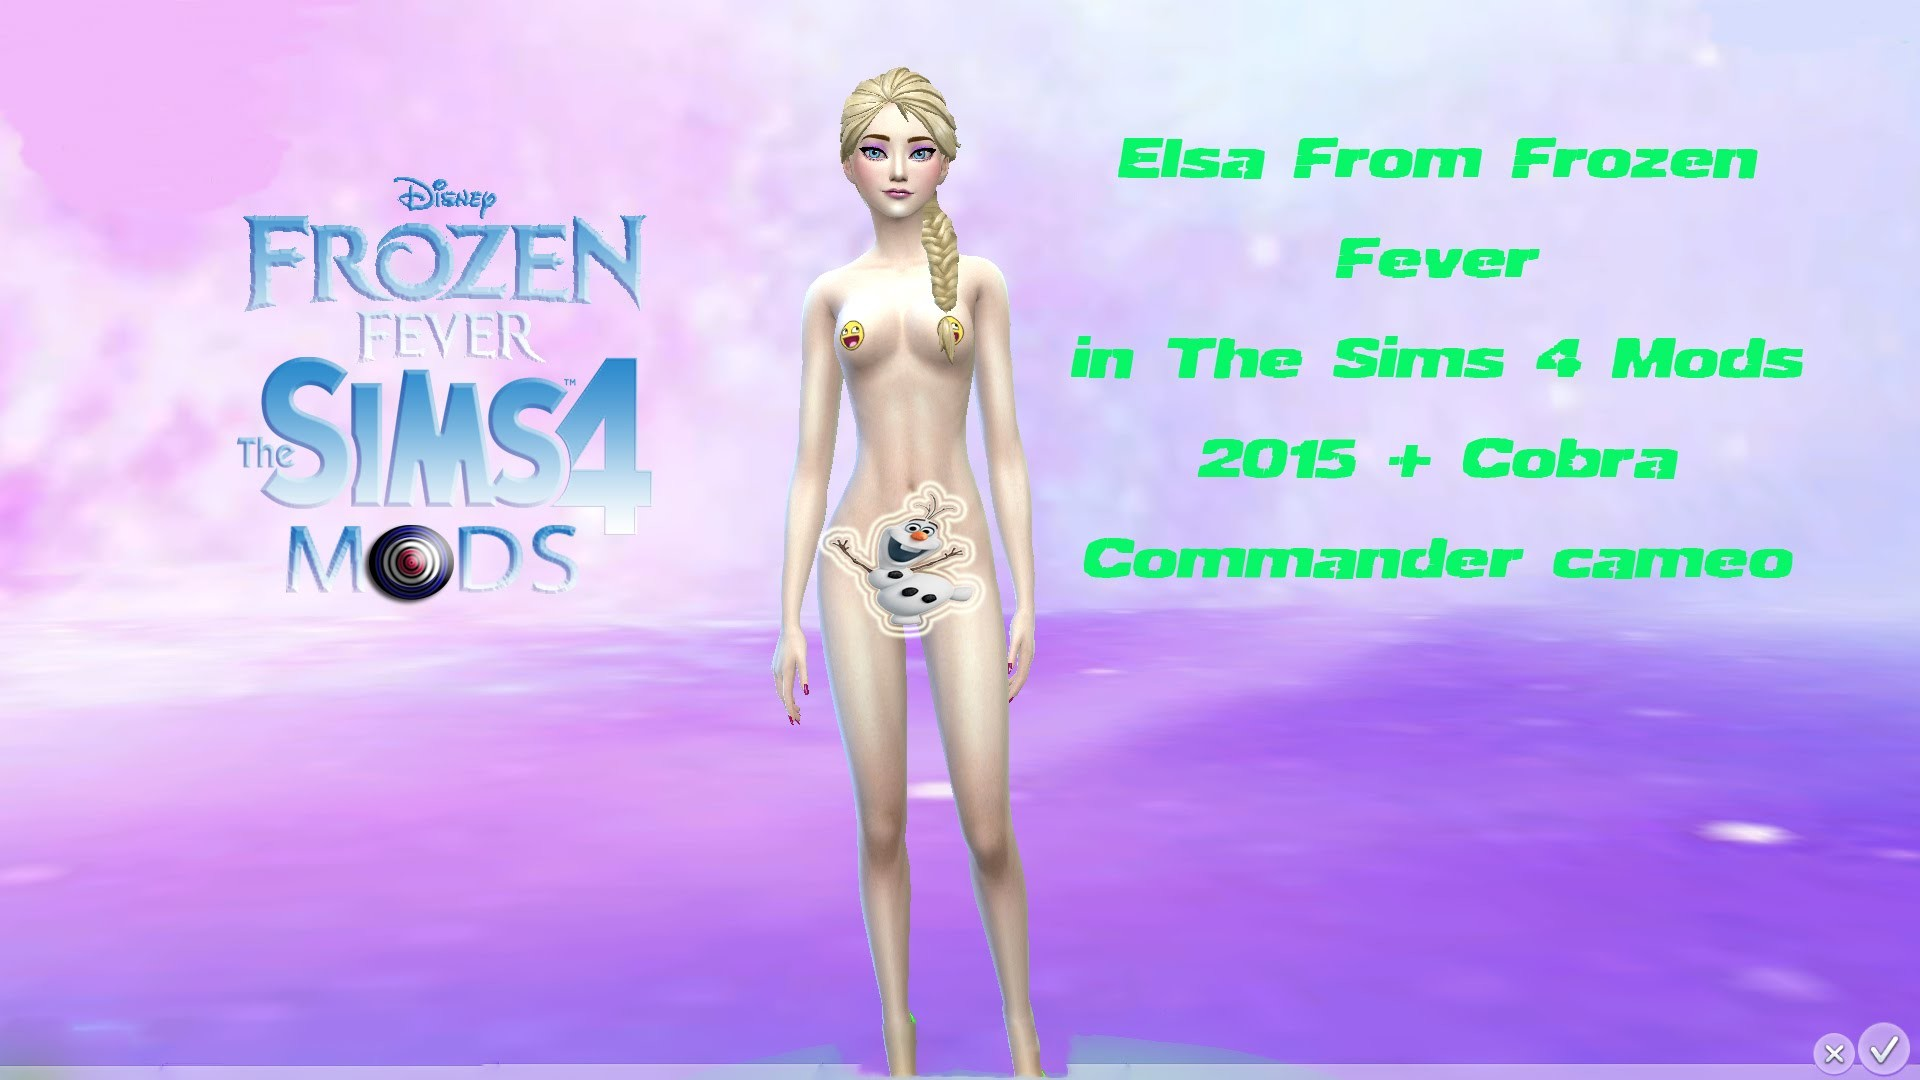 1920x1080 Elsa From Frozen Fever in The Sims 4 Mods 2015 + Cobra Commander cameo -  YouTube